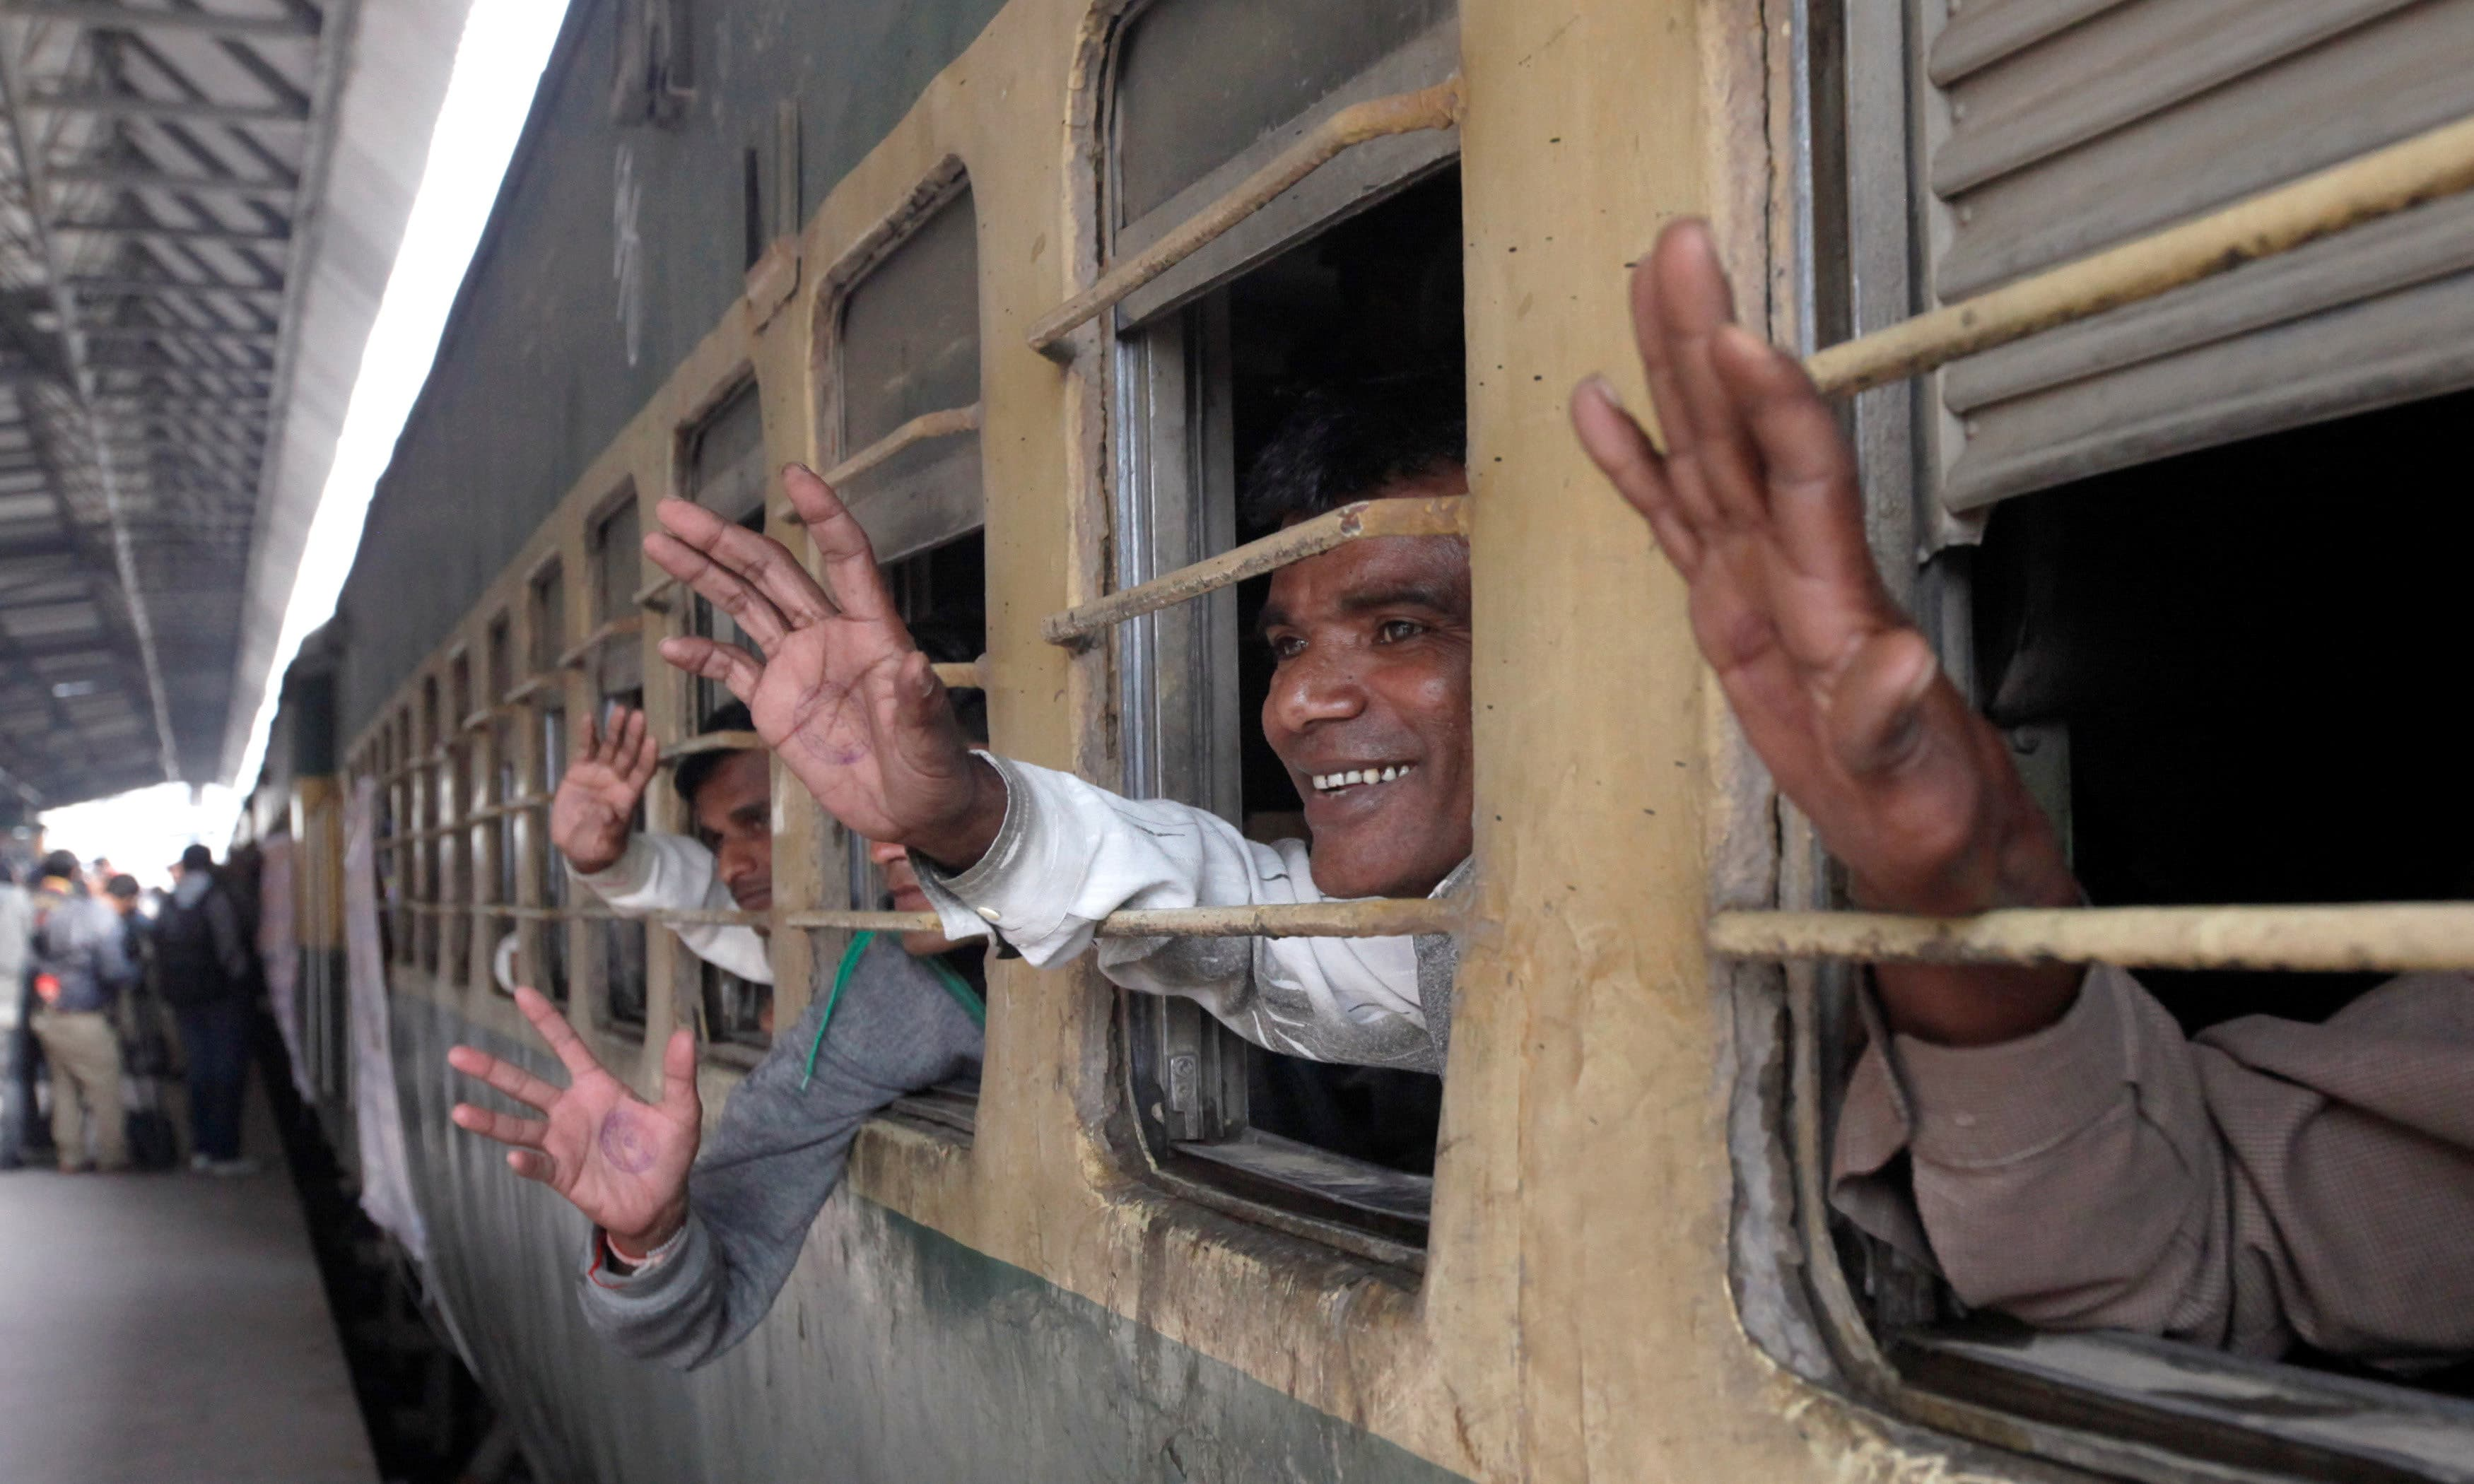 Fishermen from India wave from the windows of a train after their release. —Reuters